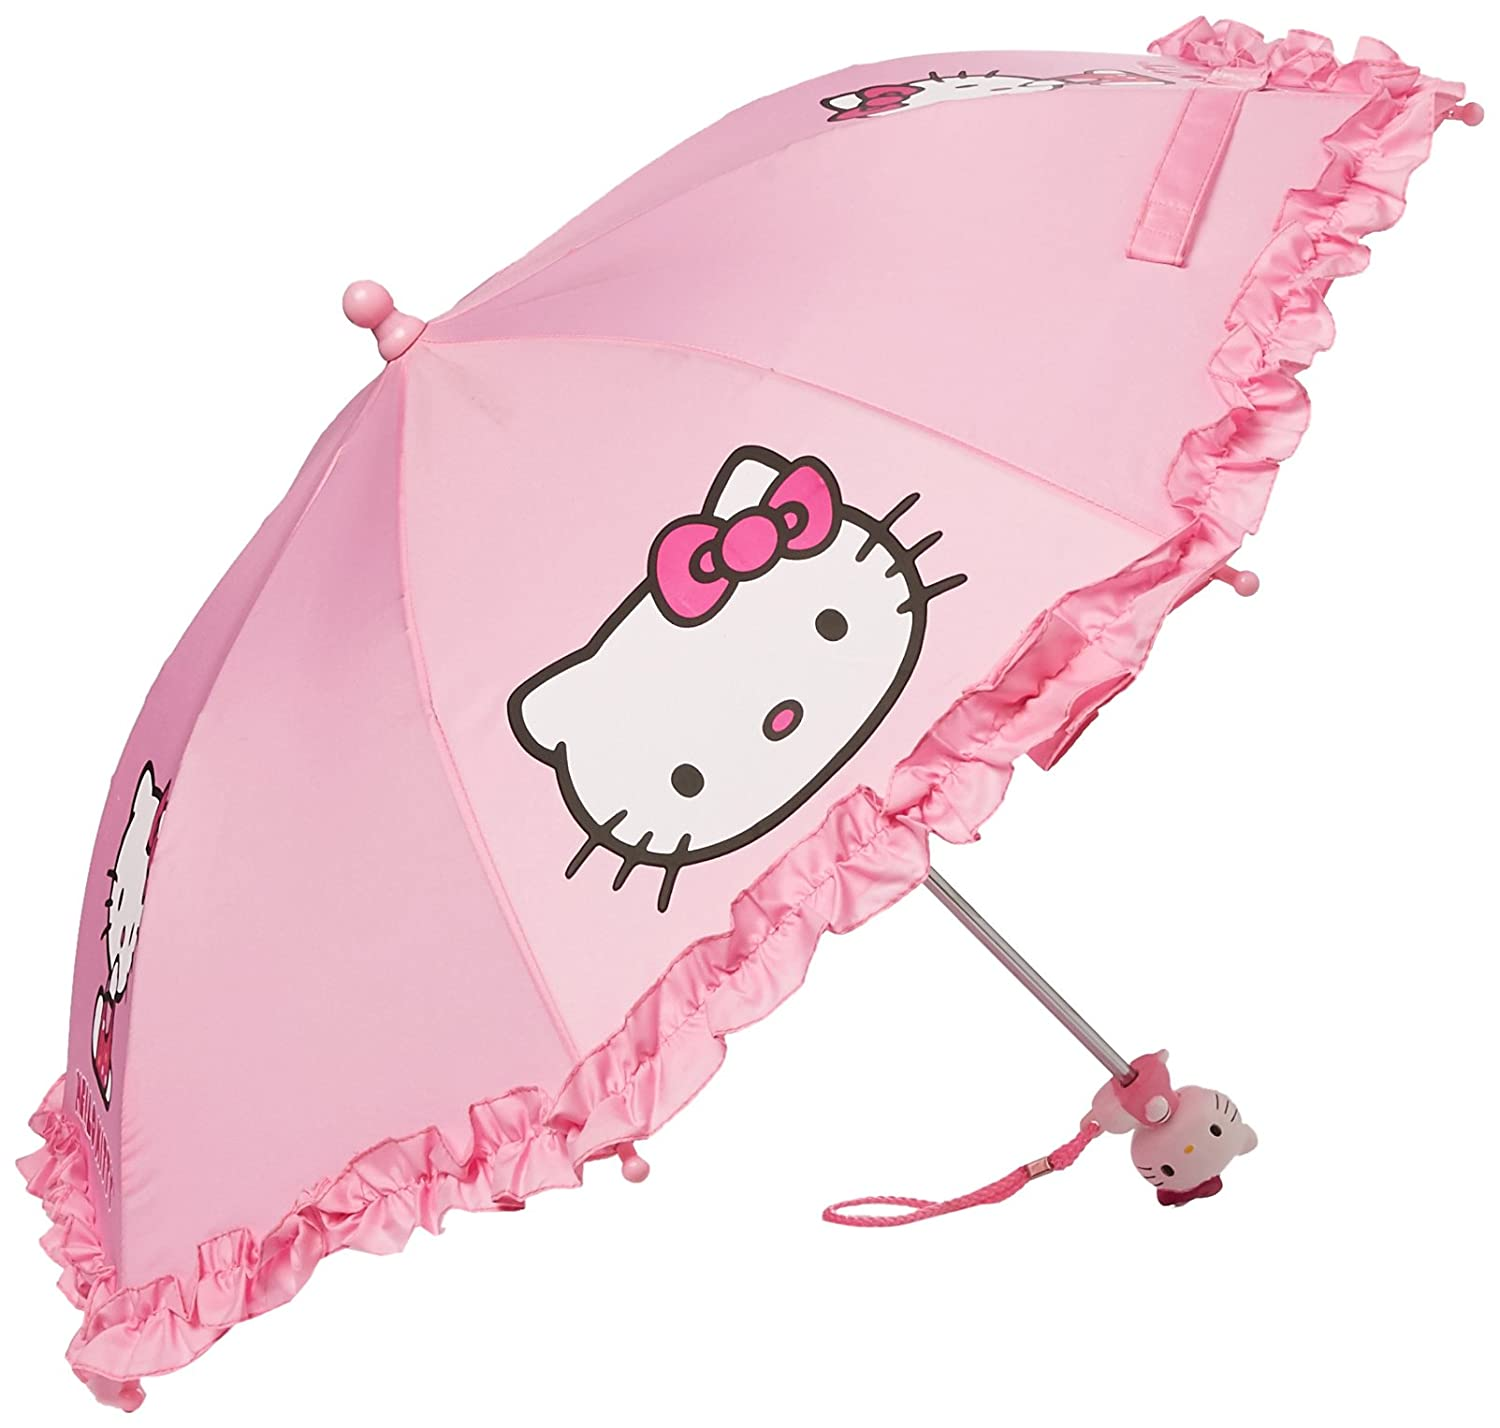 SANRIO Girls' Umbrella With 3D Hello Kitty Figurine Handle Applique 20